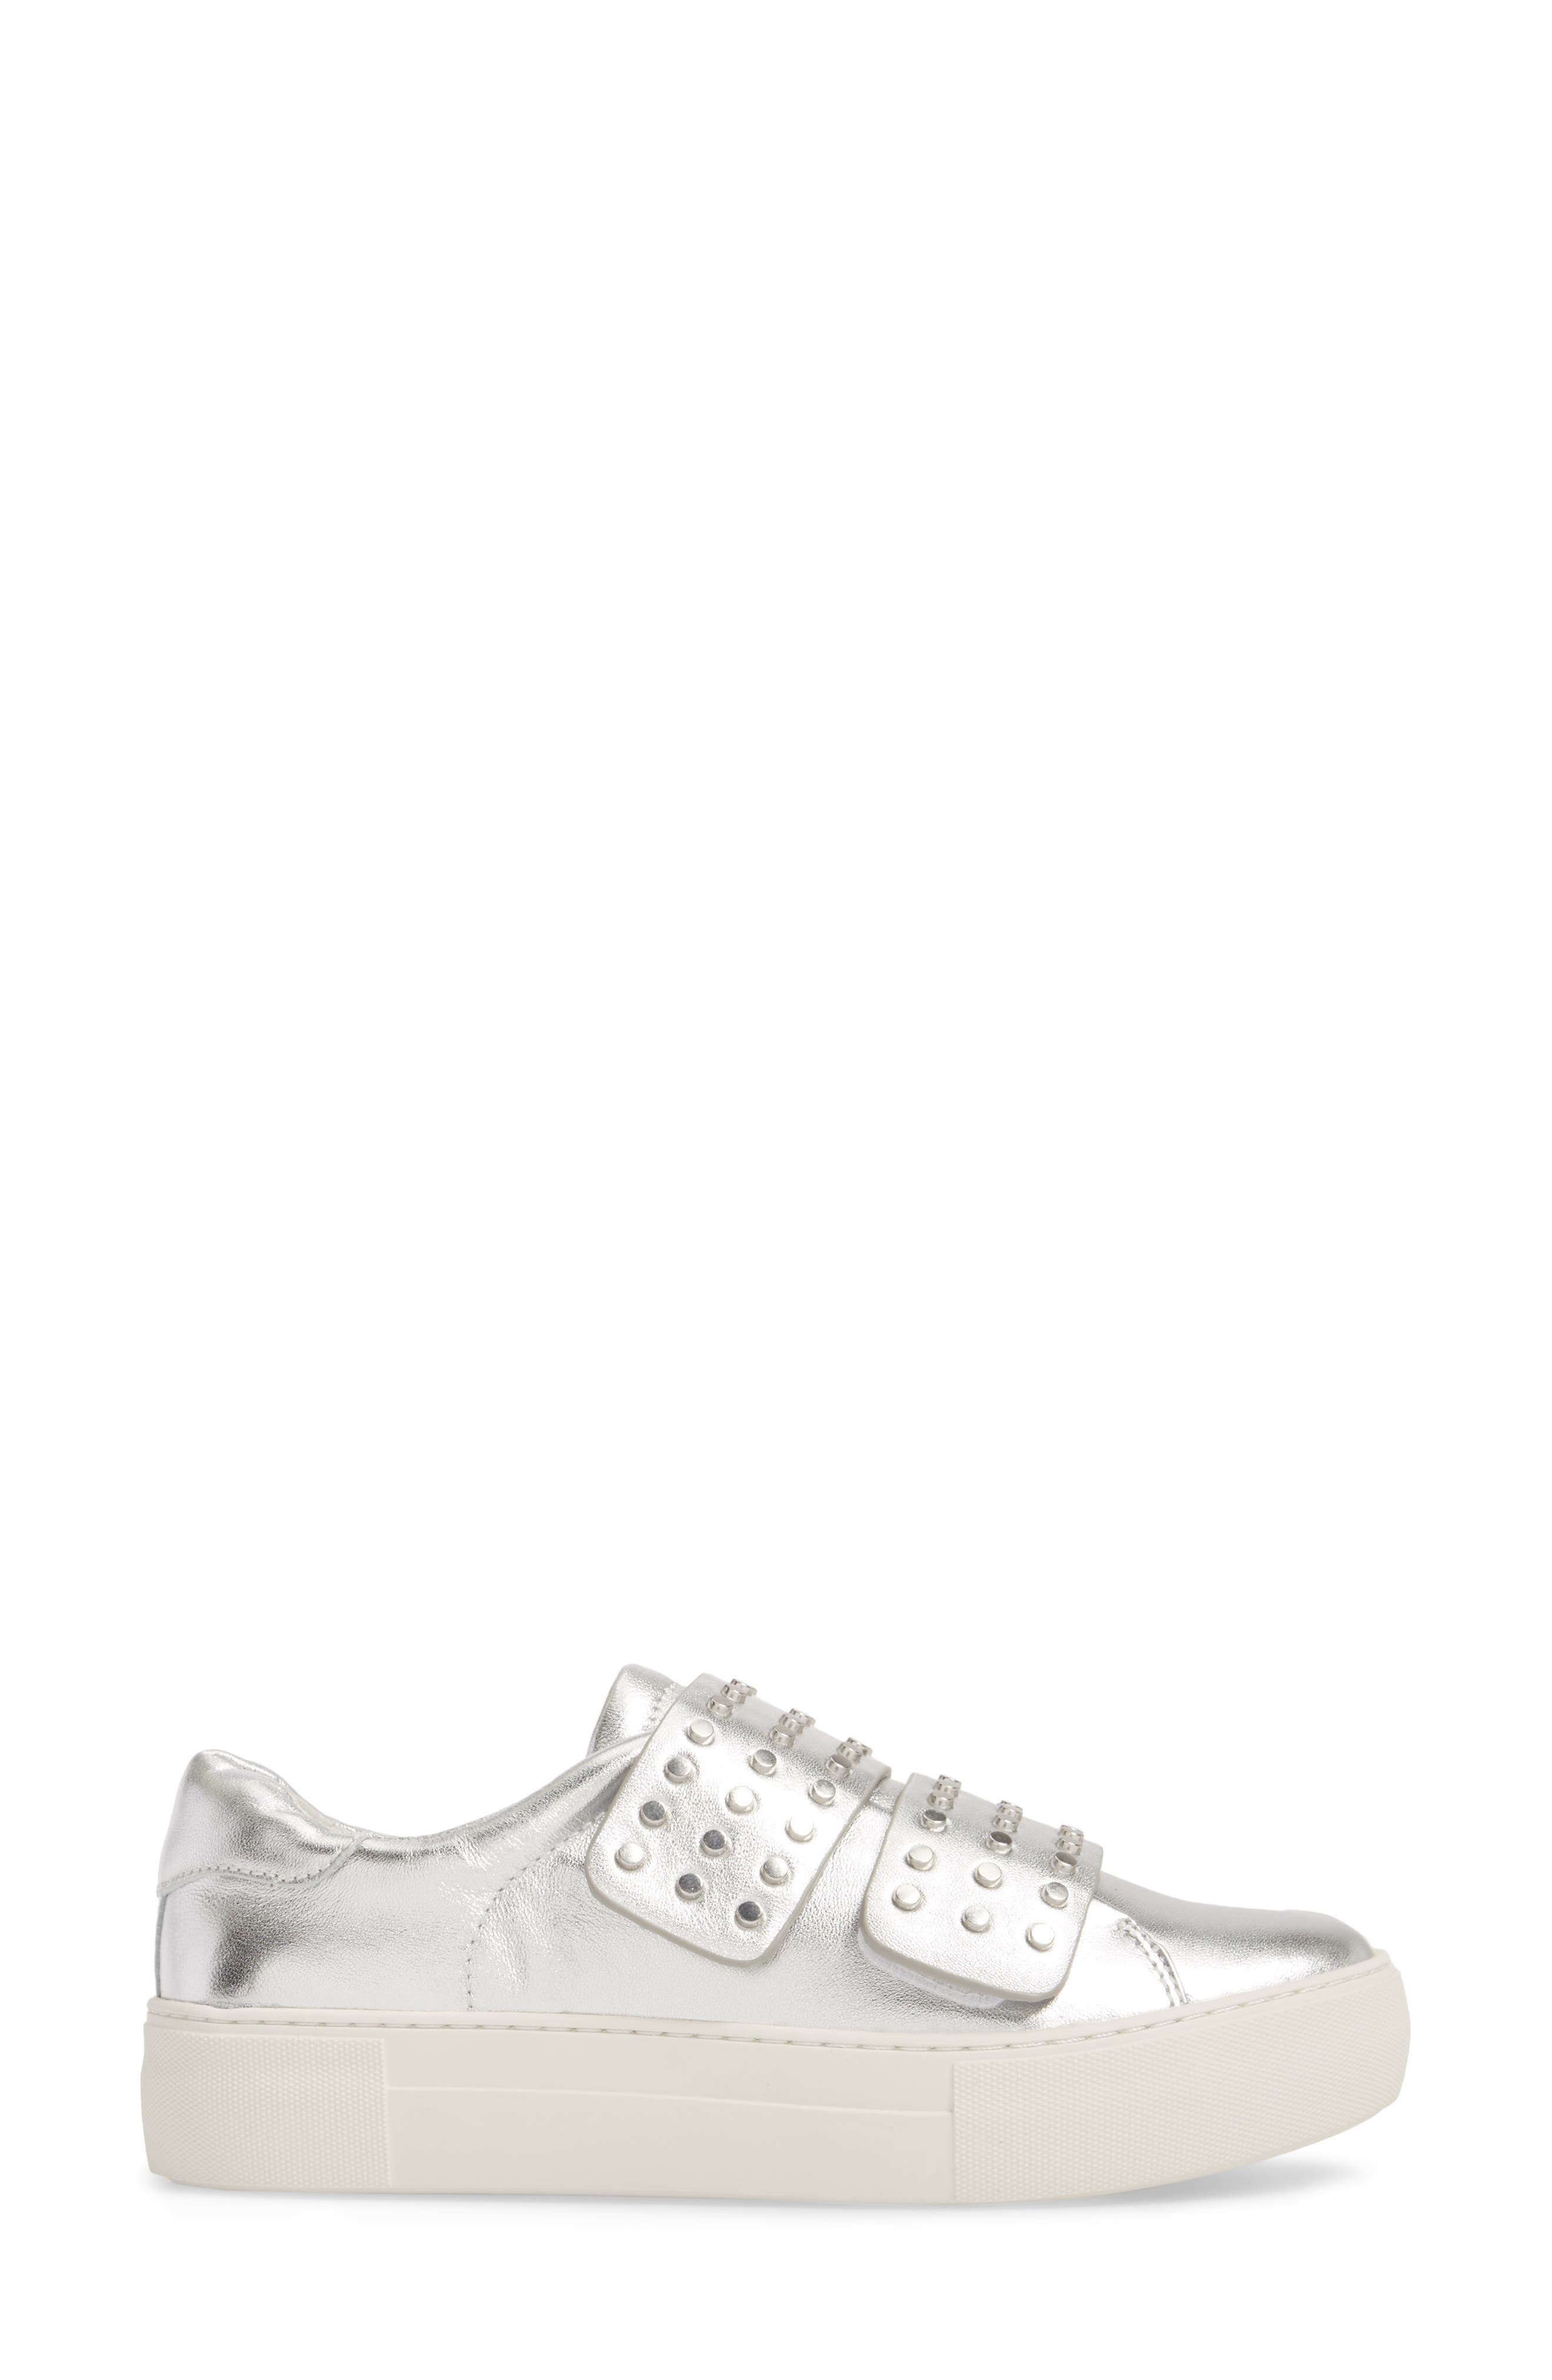 Accent Slip-On Sneaker,                             Alternate thumbnail 3, color,                             SILVER METALLIC LEATHER